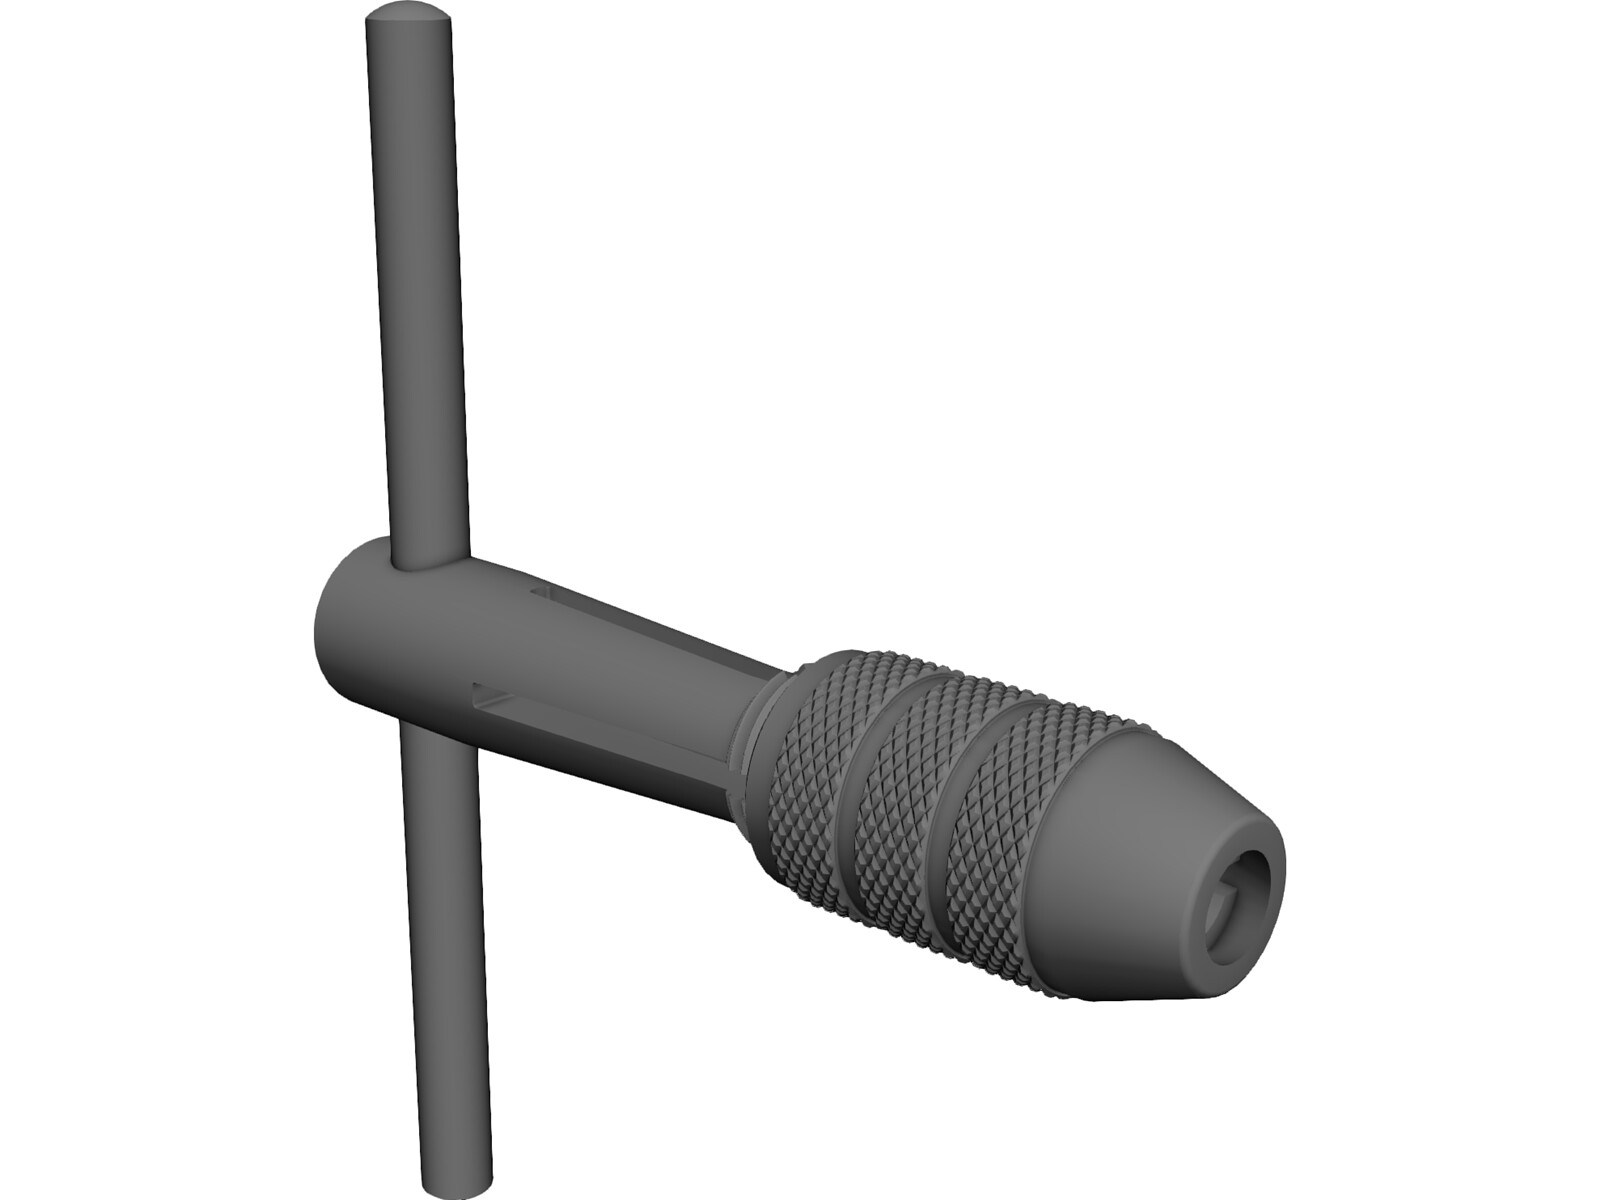 Chuck Tap Wrench 3D CAD Model